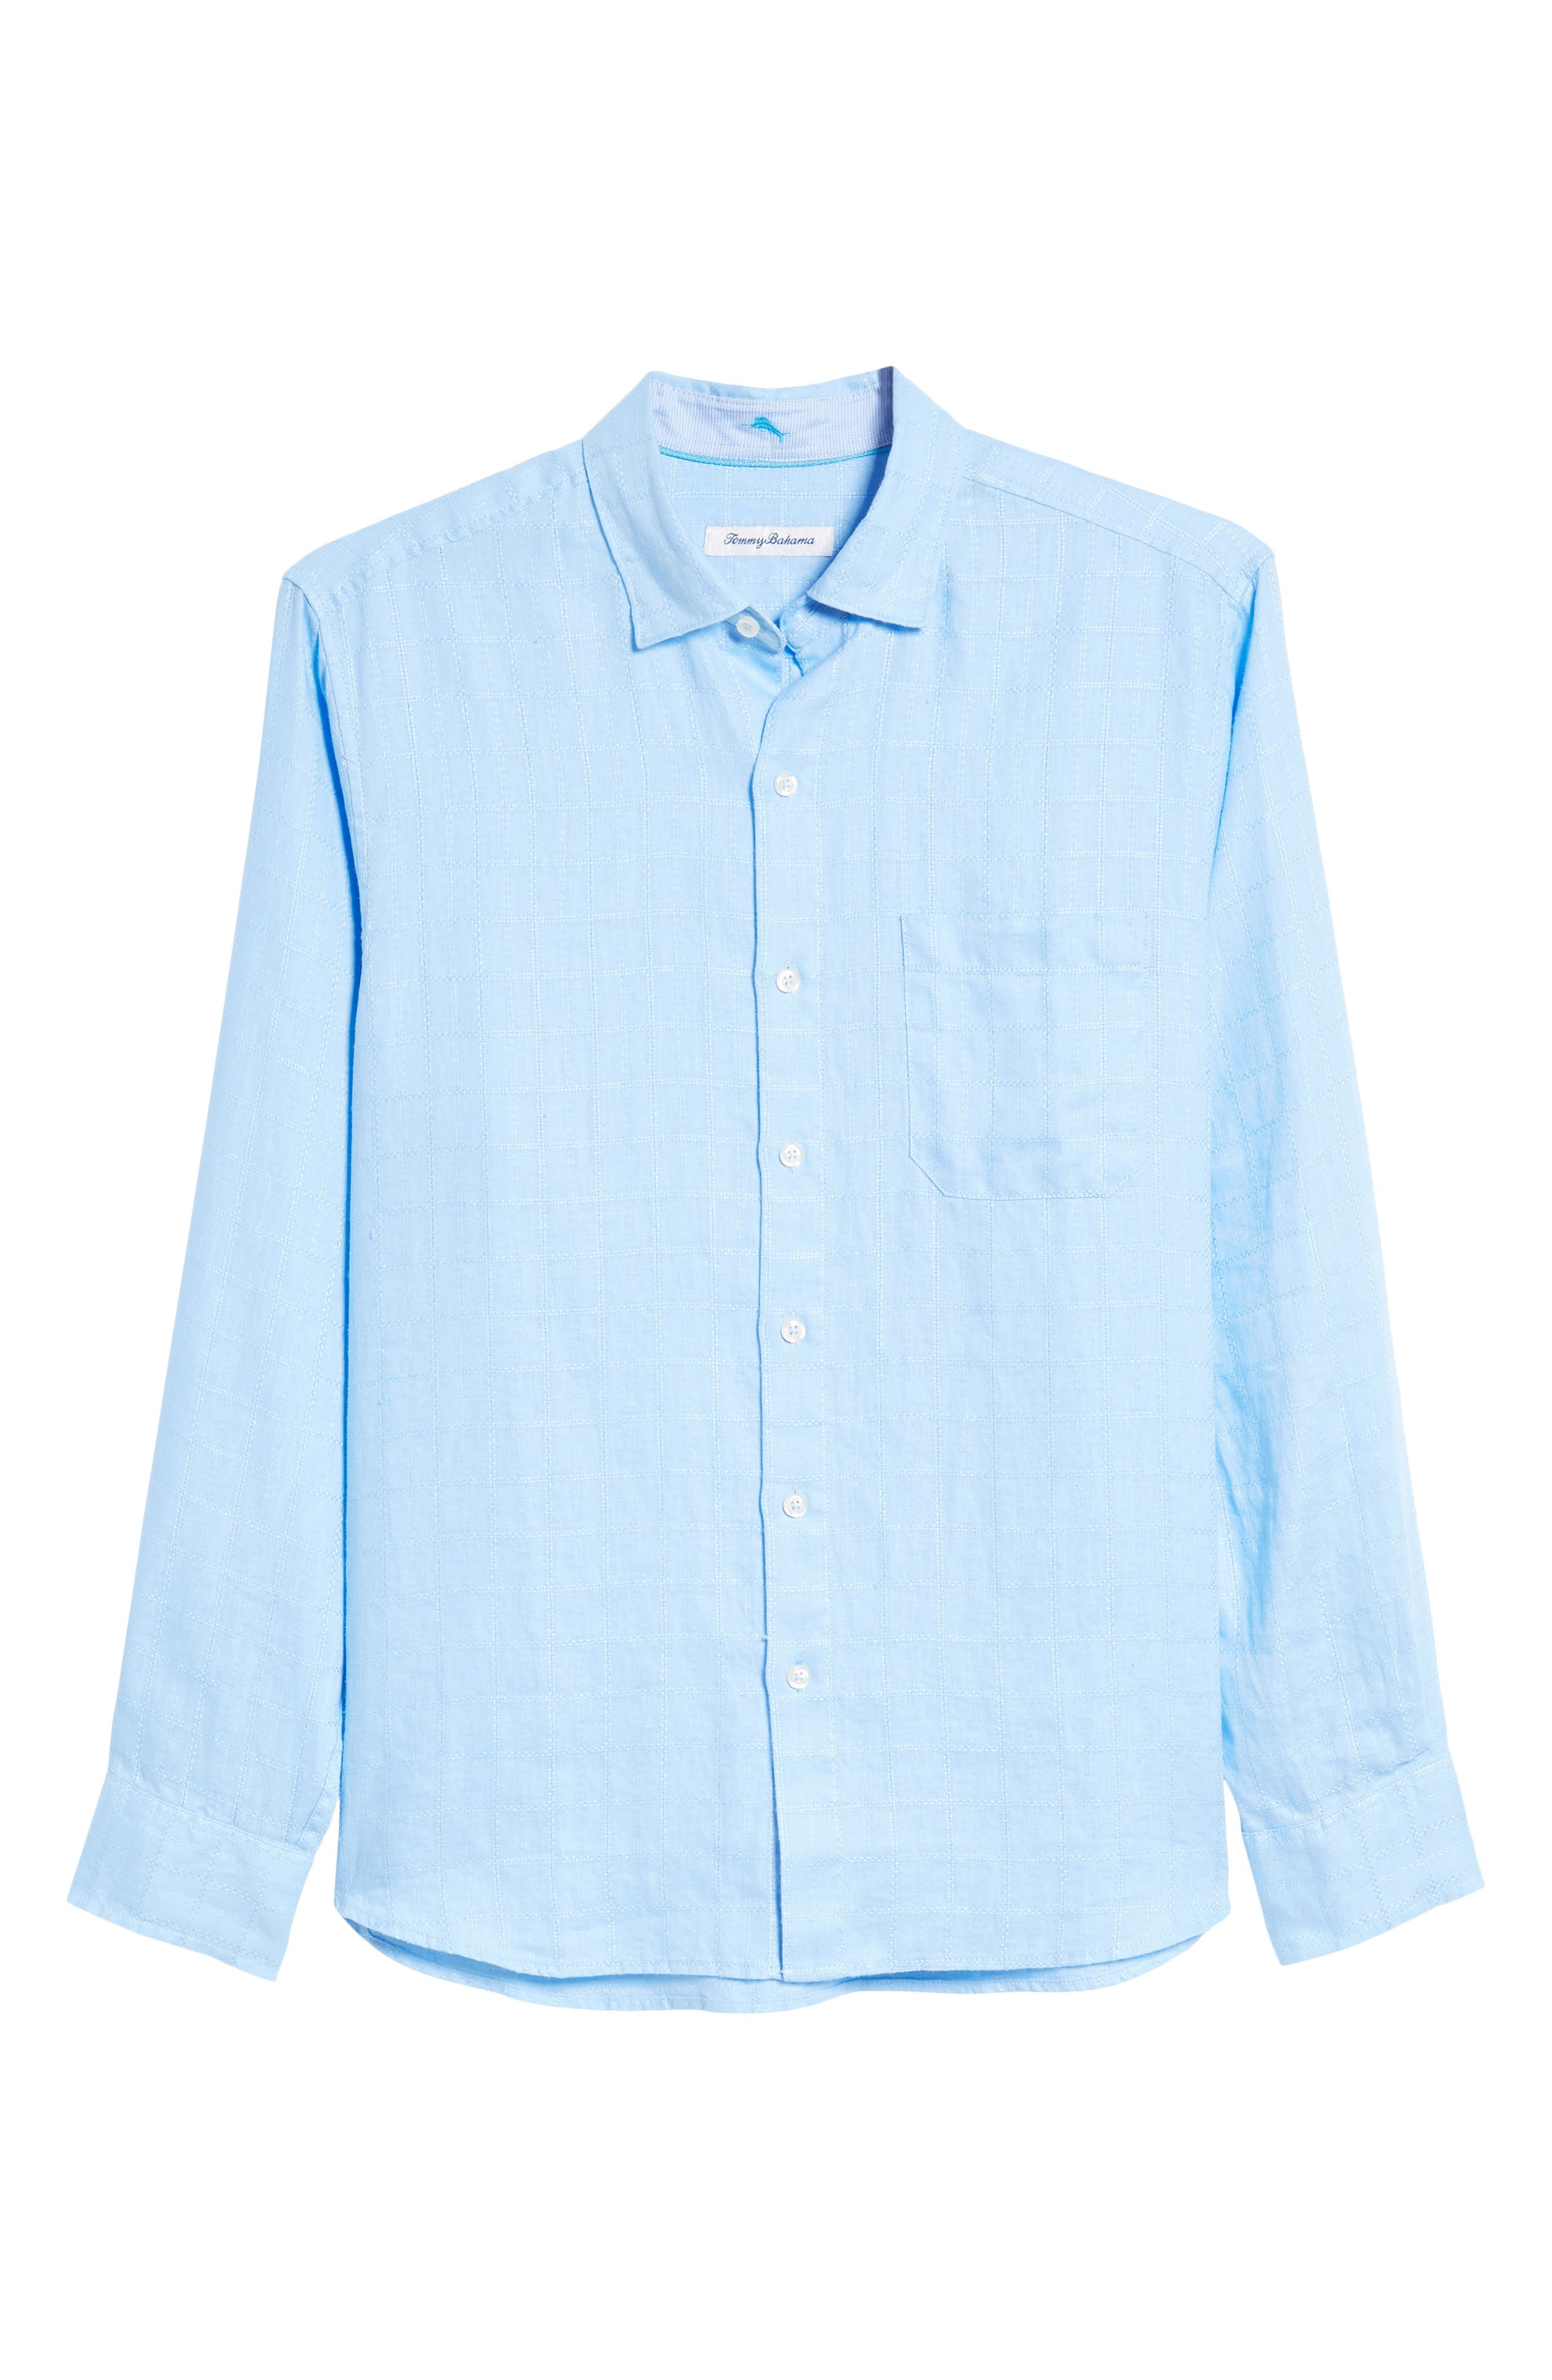 Costa Sera Linen Sport Shirt,                             Alternate thumbnail 6, color,                             Light Sky